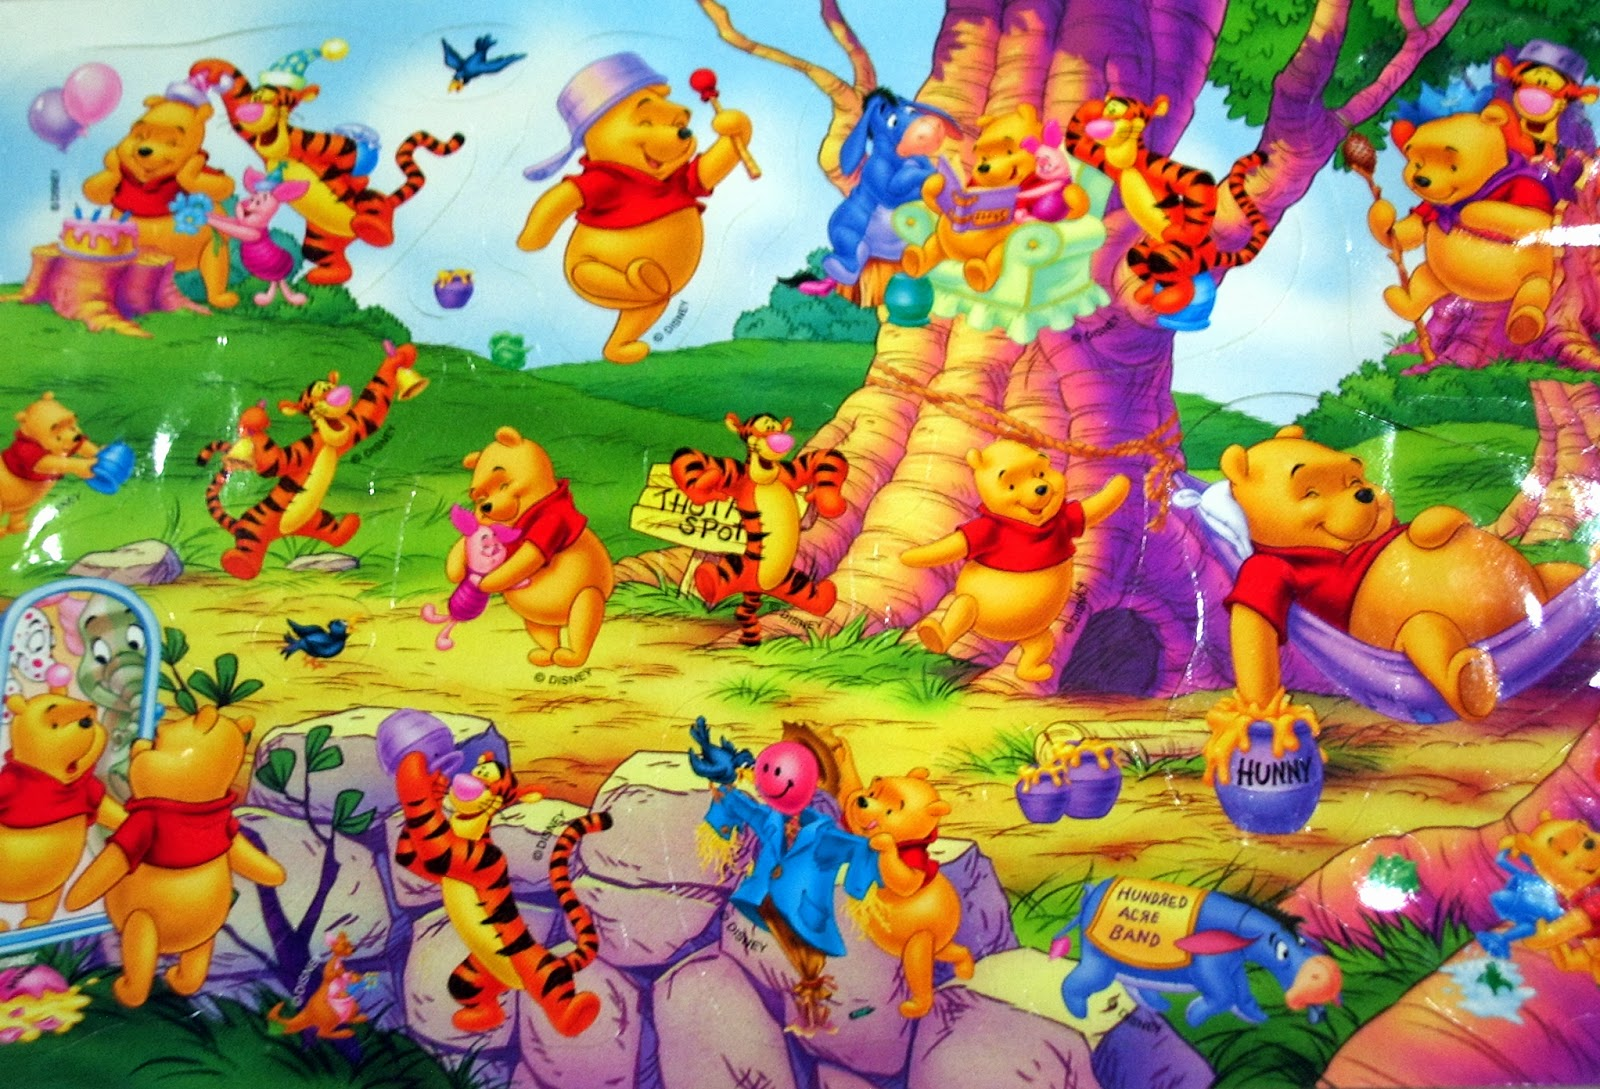 Winnie The Pooh HDQ Images VPC HD Wallpapers For Desktop 1600x1089